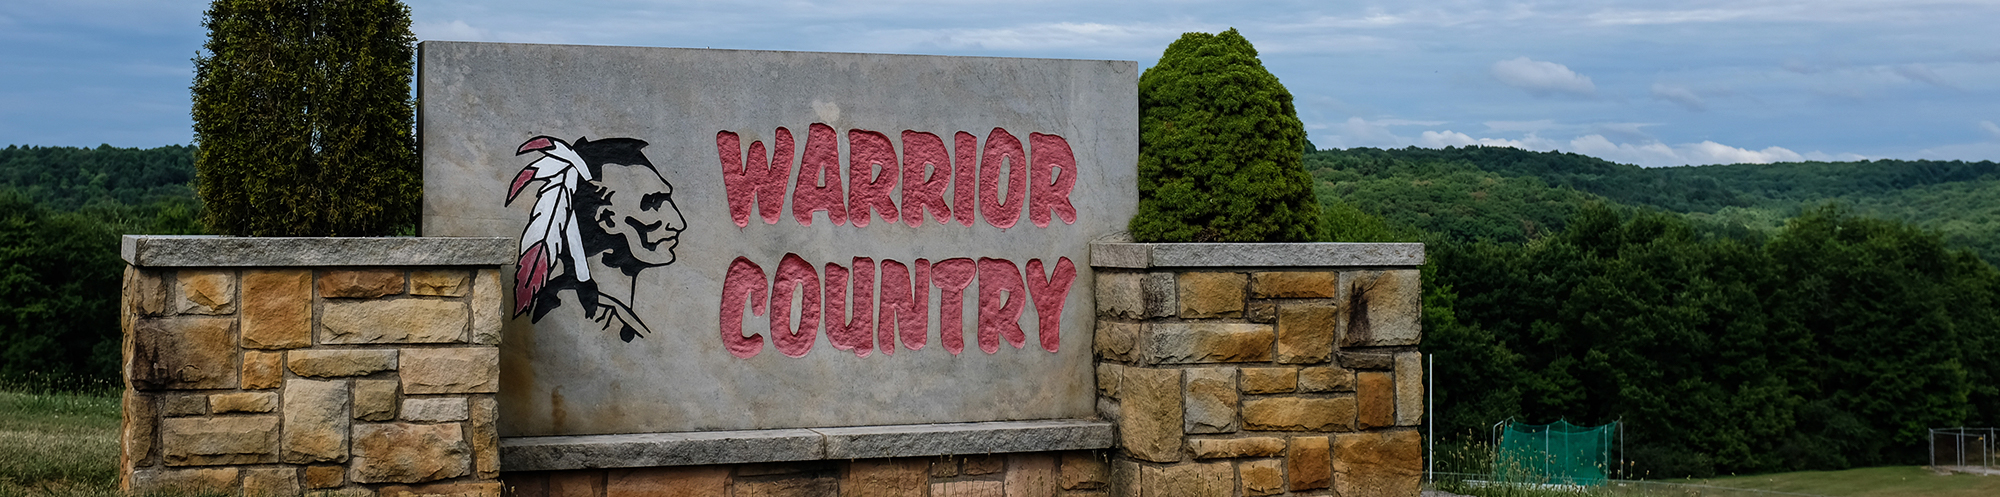 Warrior Country